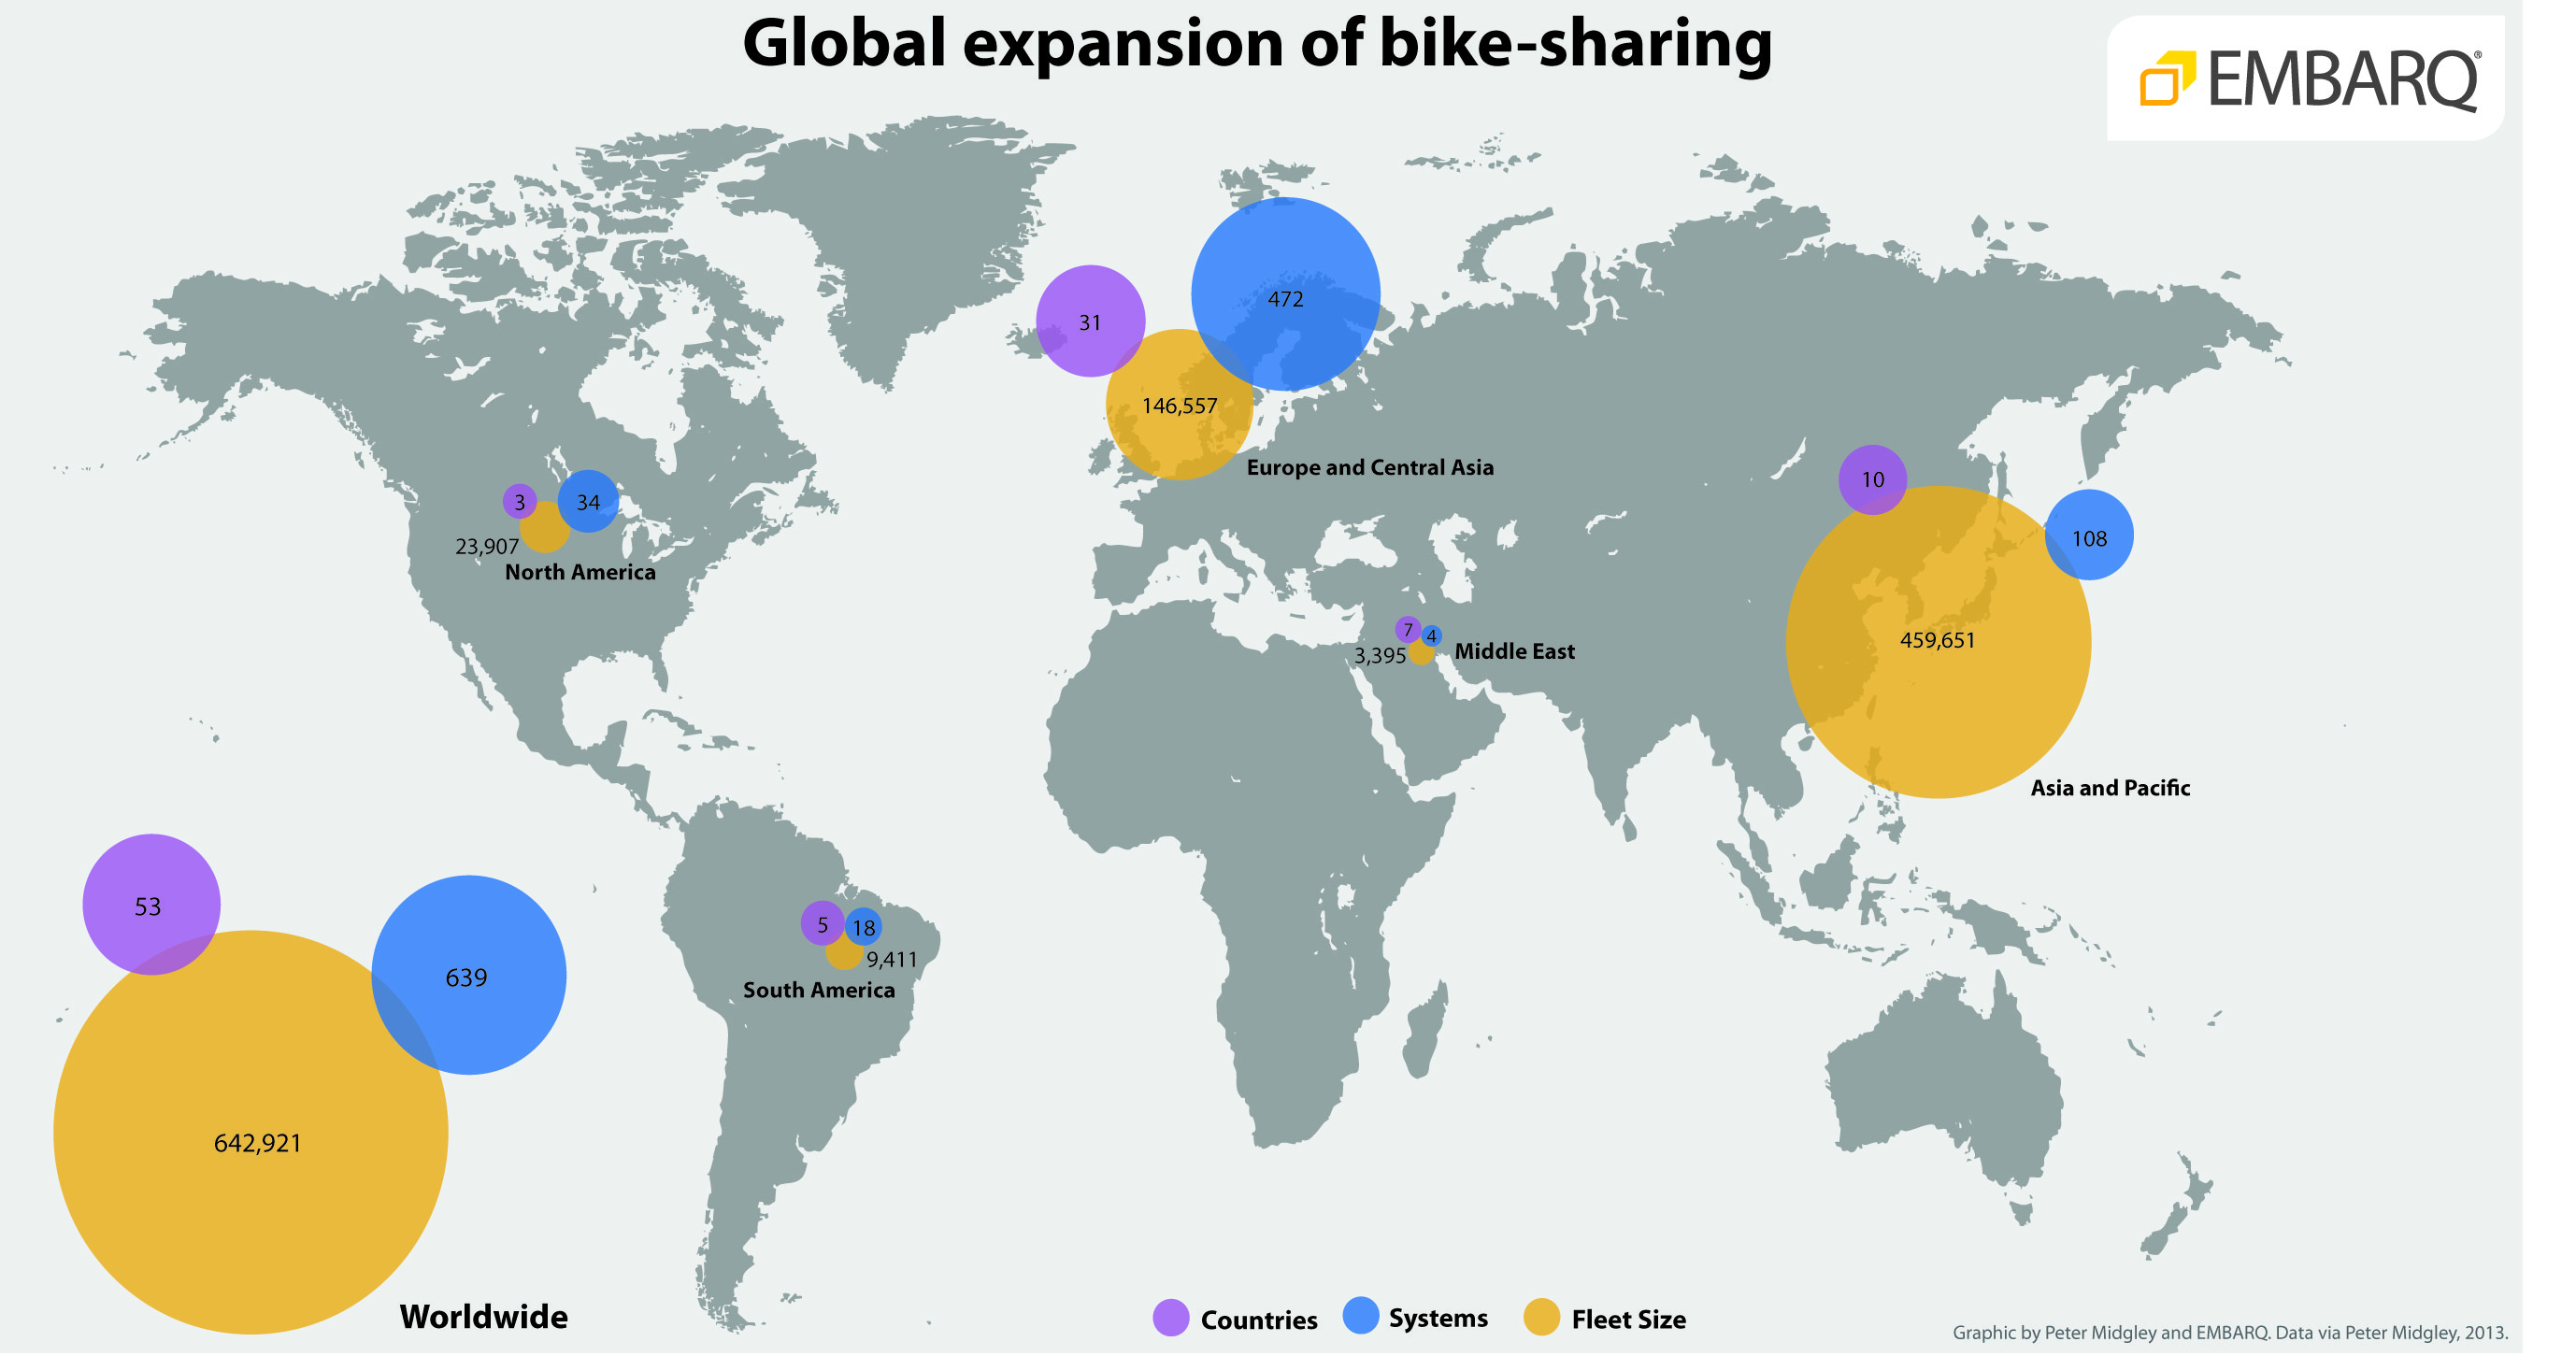 Global bicycle sharing countries, systems, and fleet by region.